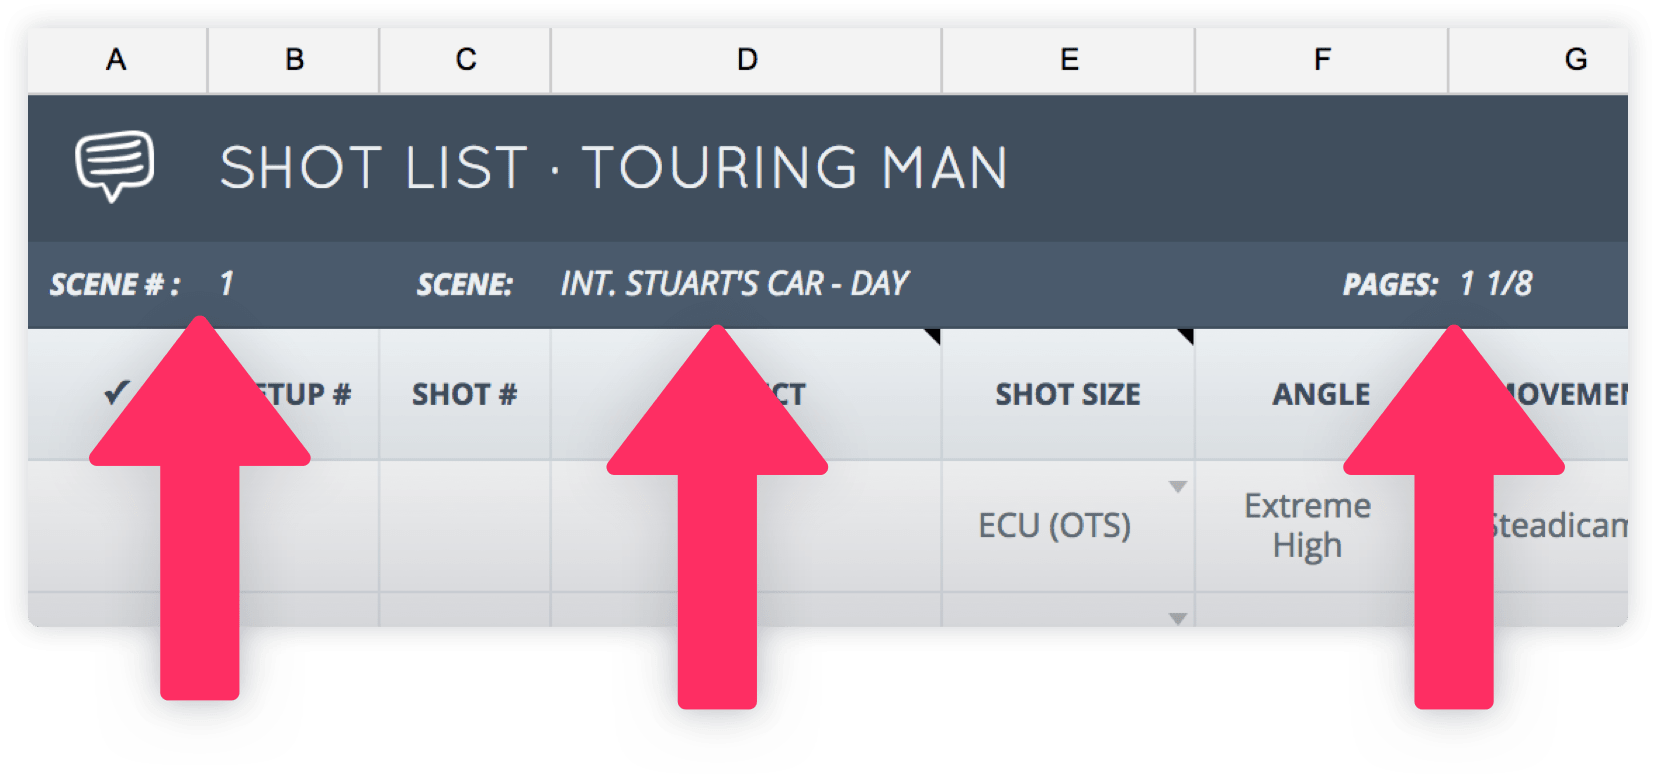 Shot List Template - Scene Details